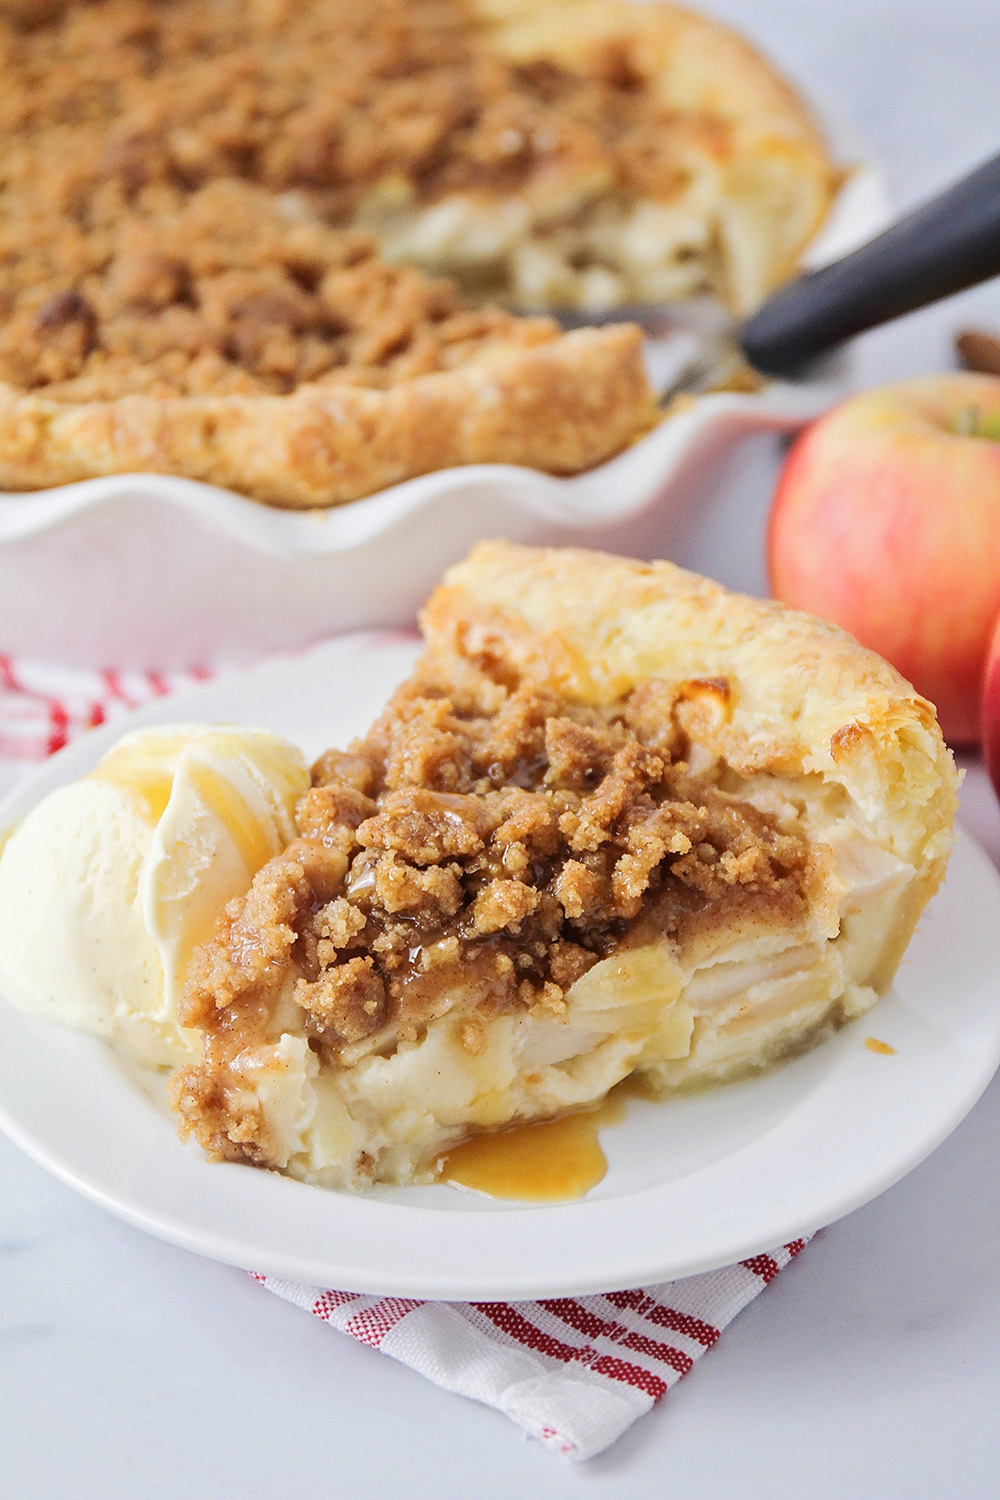 This sour cream apple pie is irresistible! It has tender apples in a sweet custard, with buttery cinnamon streusel and flaky pie crust.